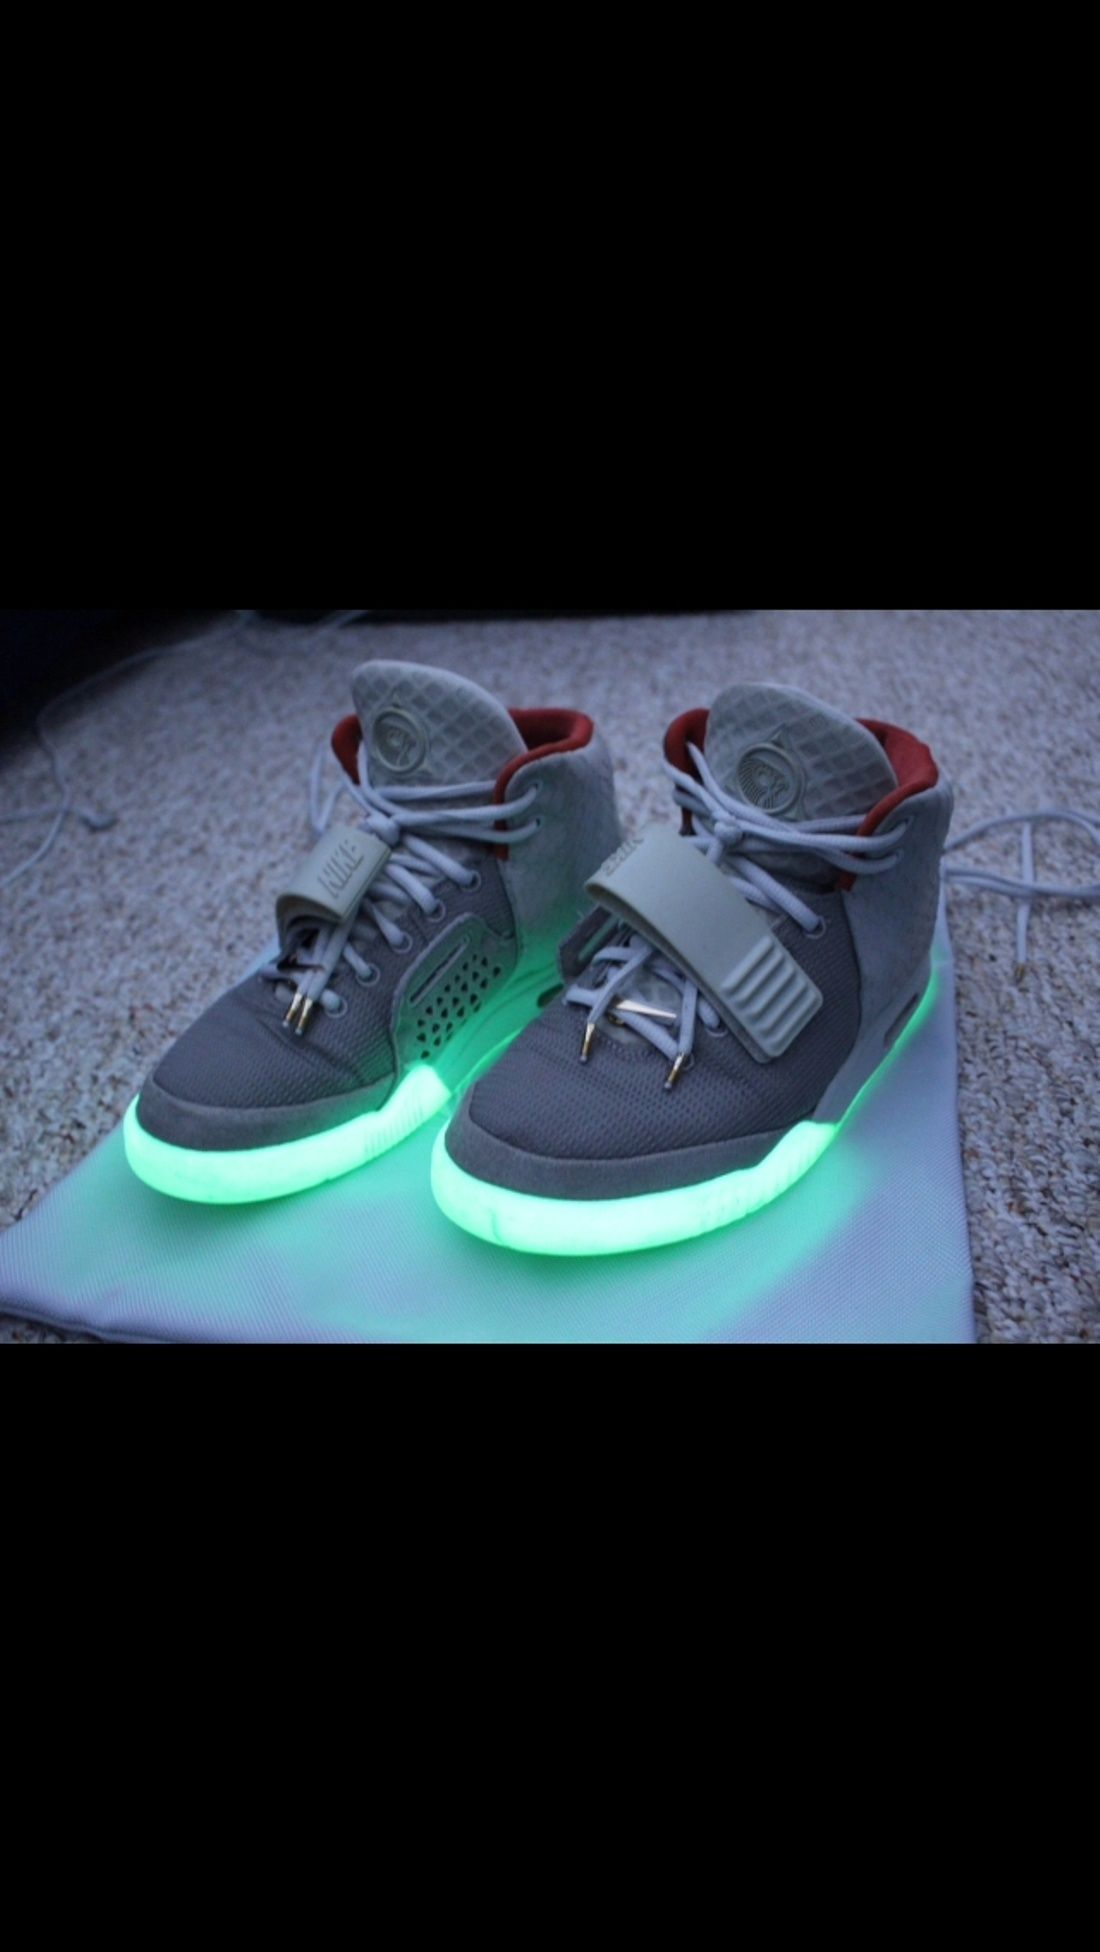 Kanye West Nike Air Yeezy 2 Size 8.5 $1650 - Grailed